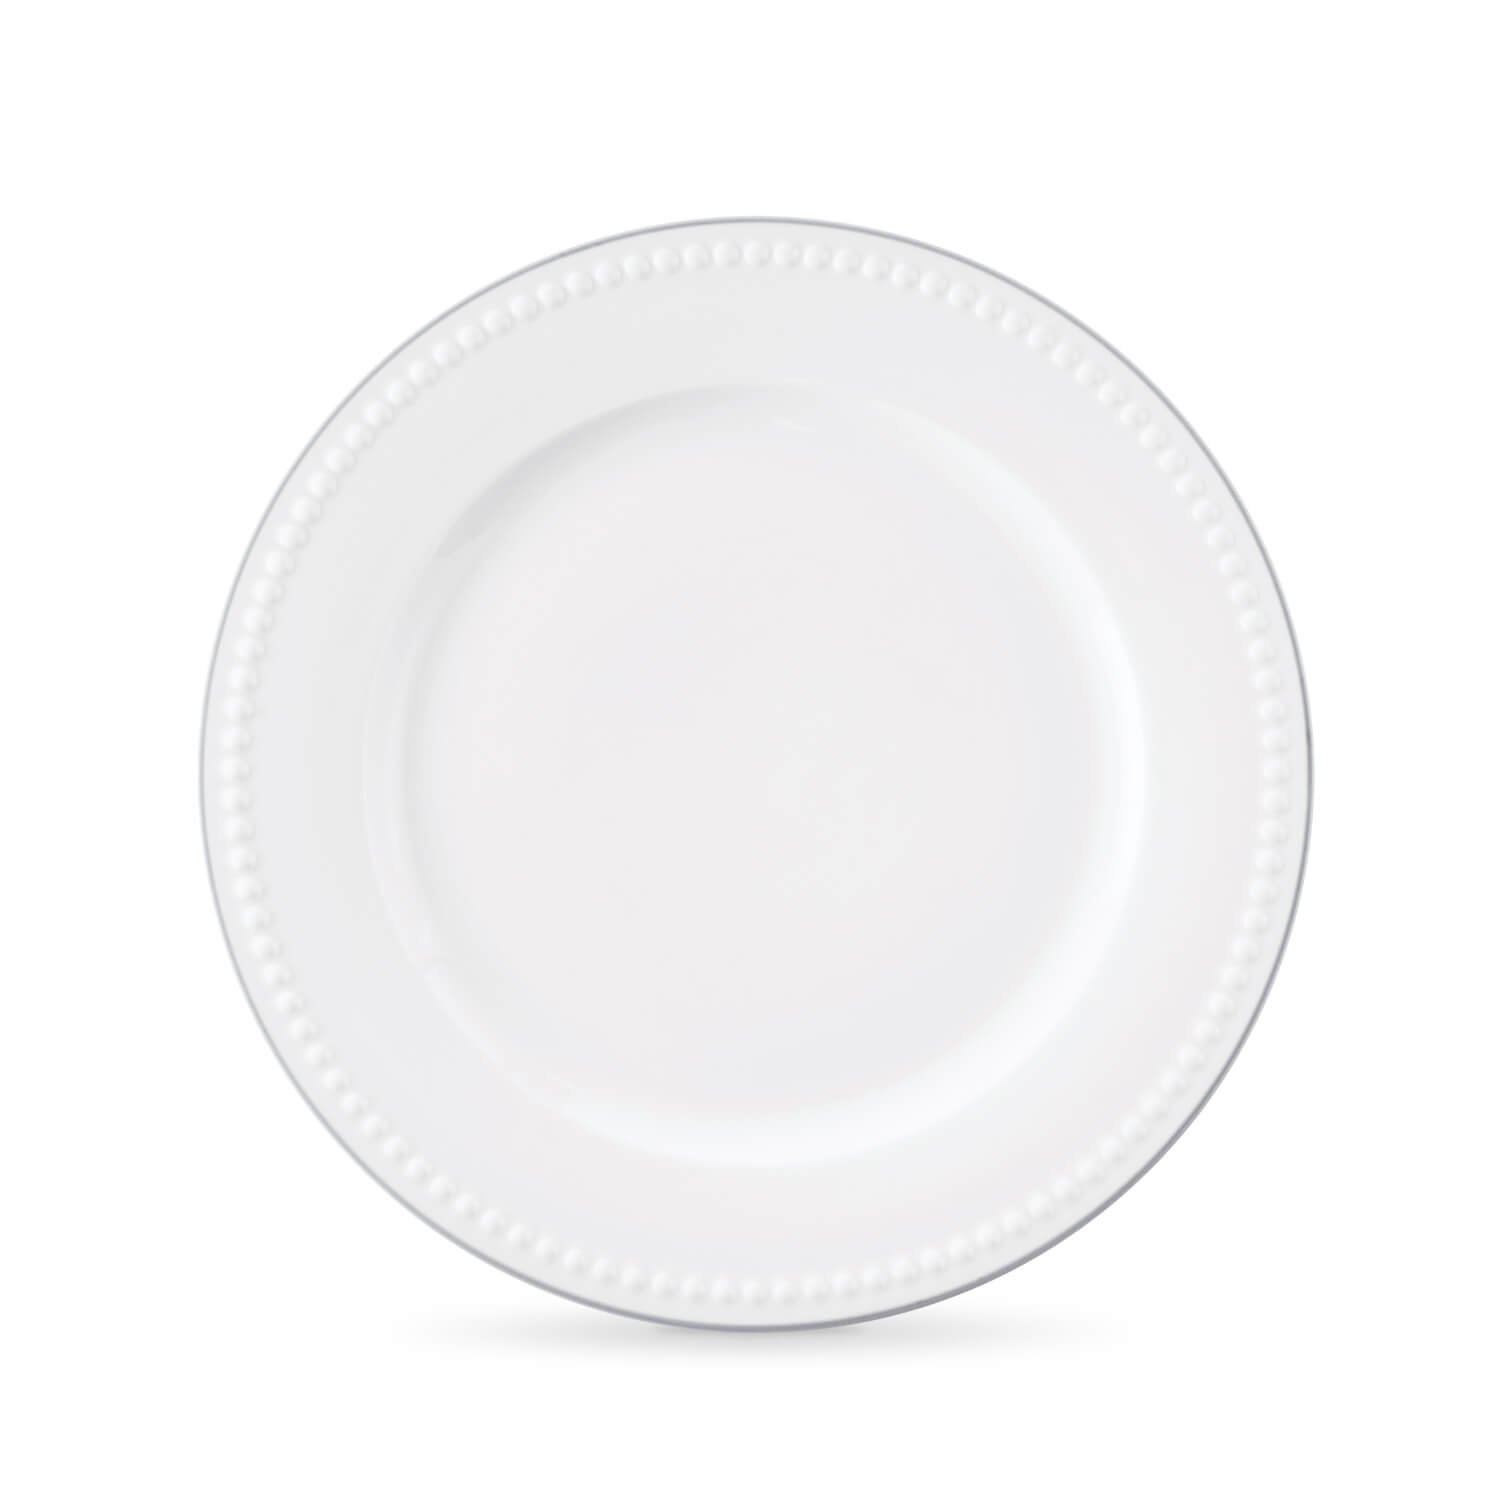 SIGNATURE COLLECTION DINNER PLATE 27cm